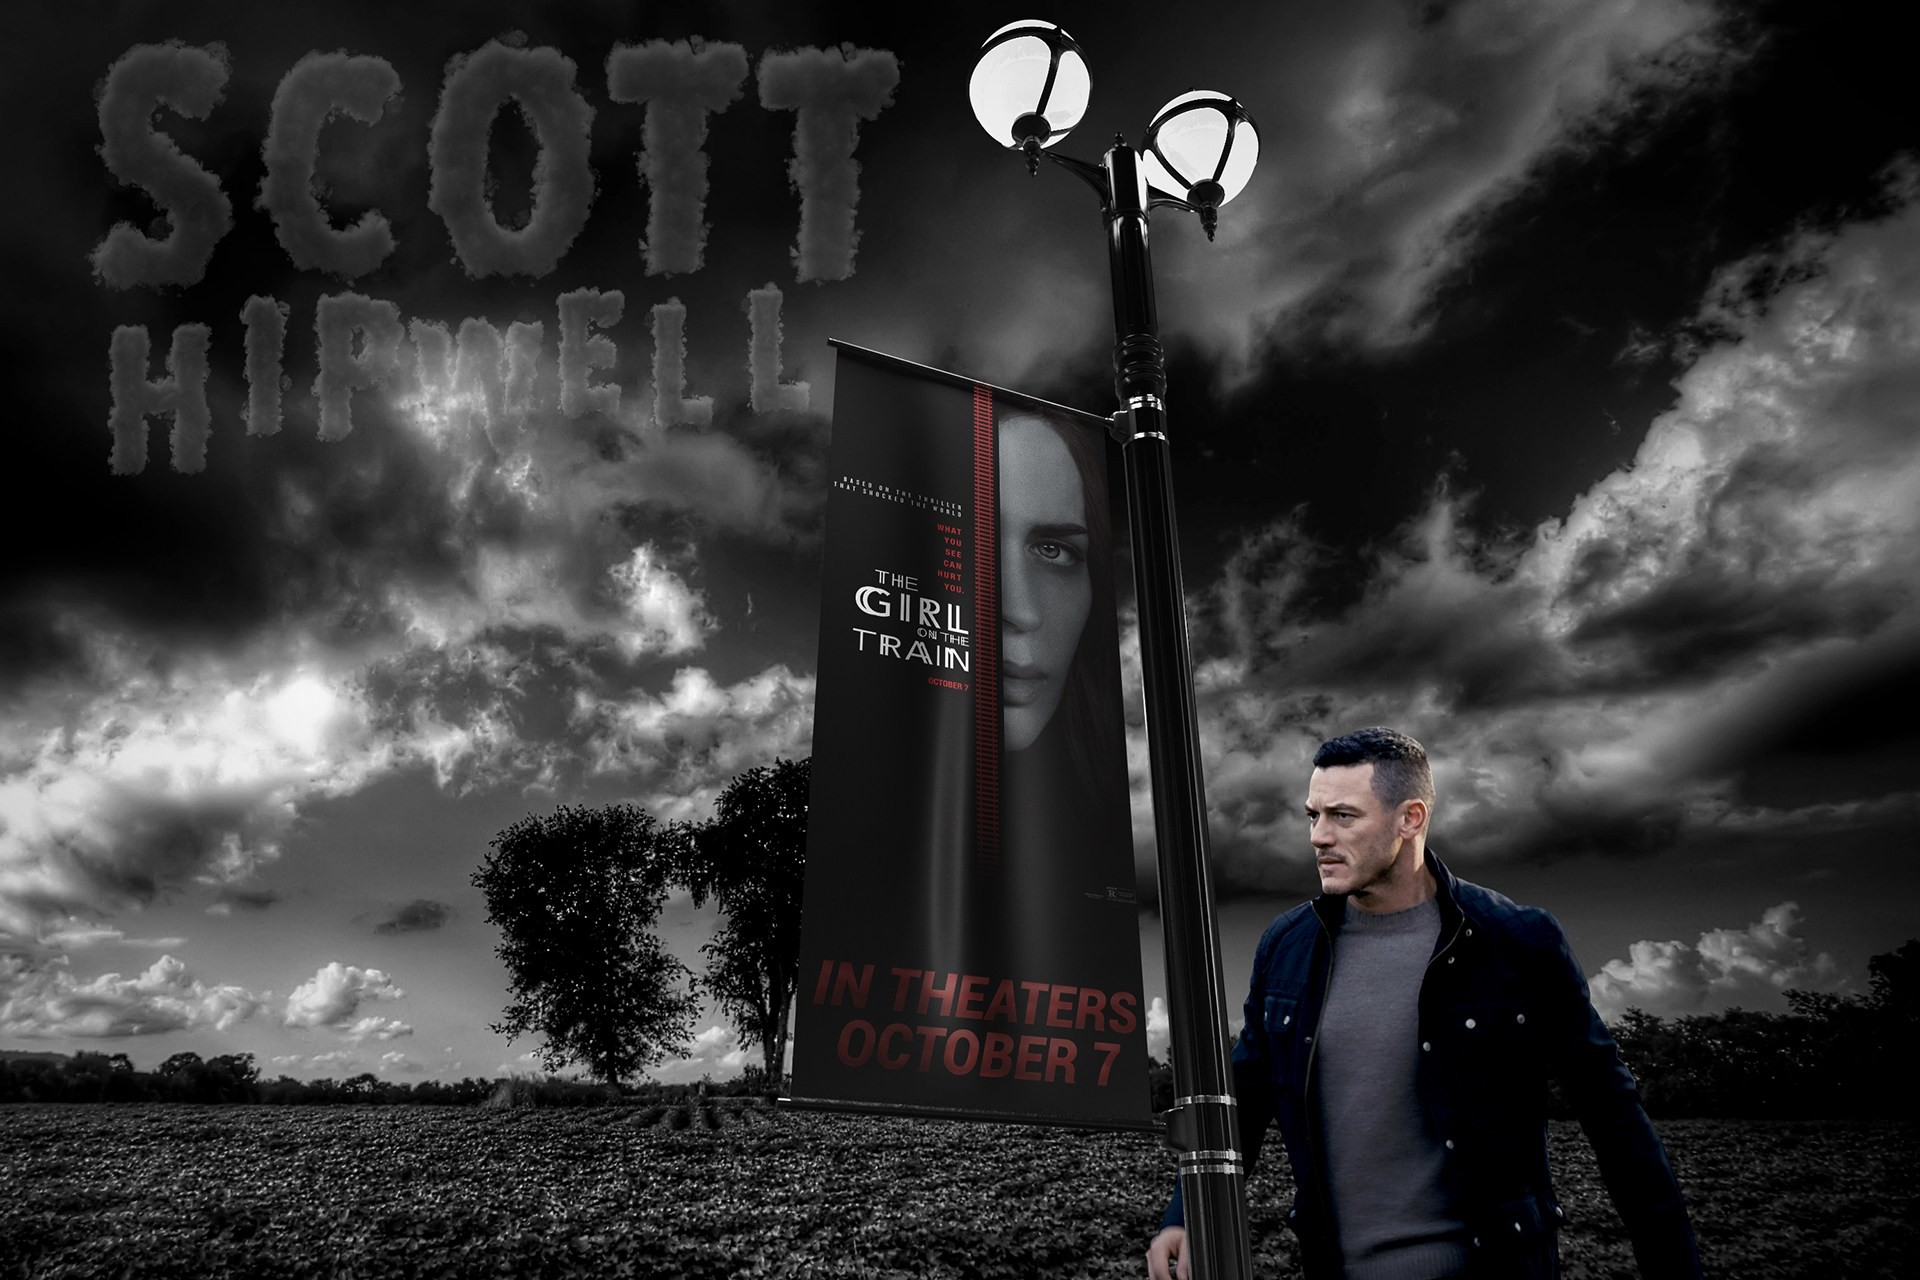 I've made a new wallpaper of Luke as Scott Hipwell in The Girl on the Train.